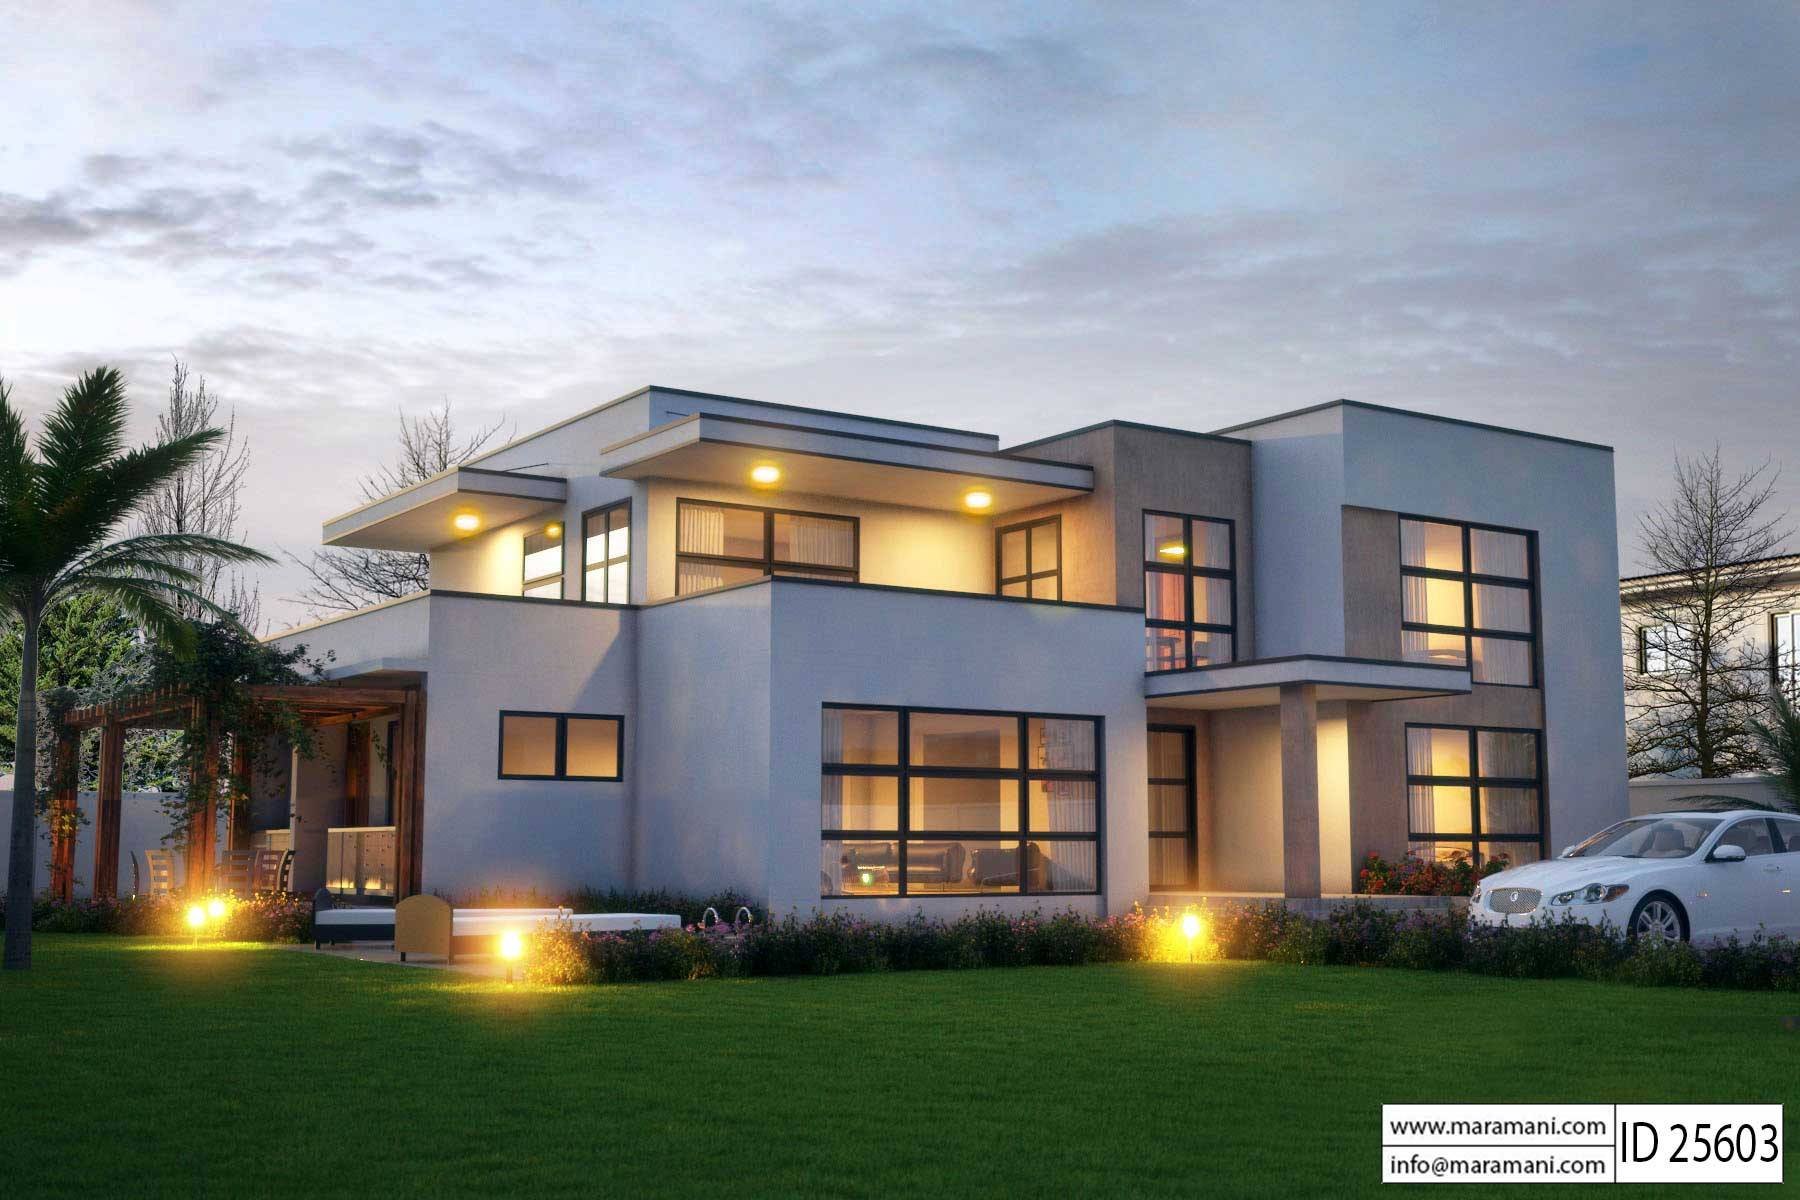 Modern 5 bedroom house design id 25603 floor plans by for Floor plans for 5 bedroom house